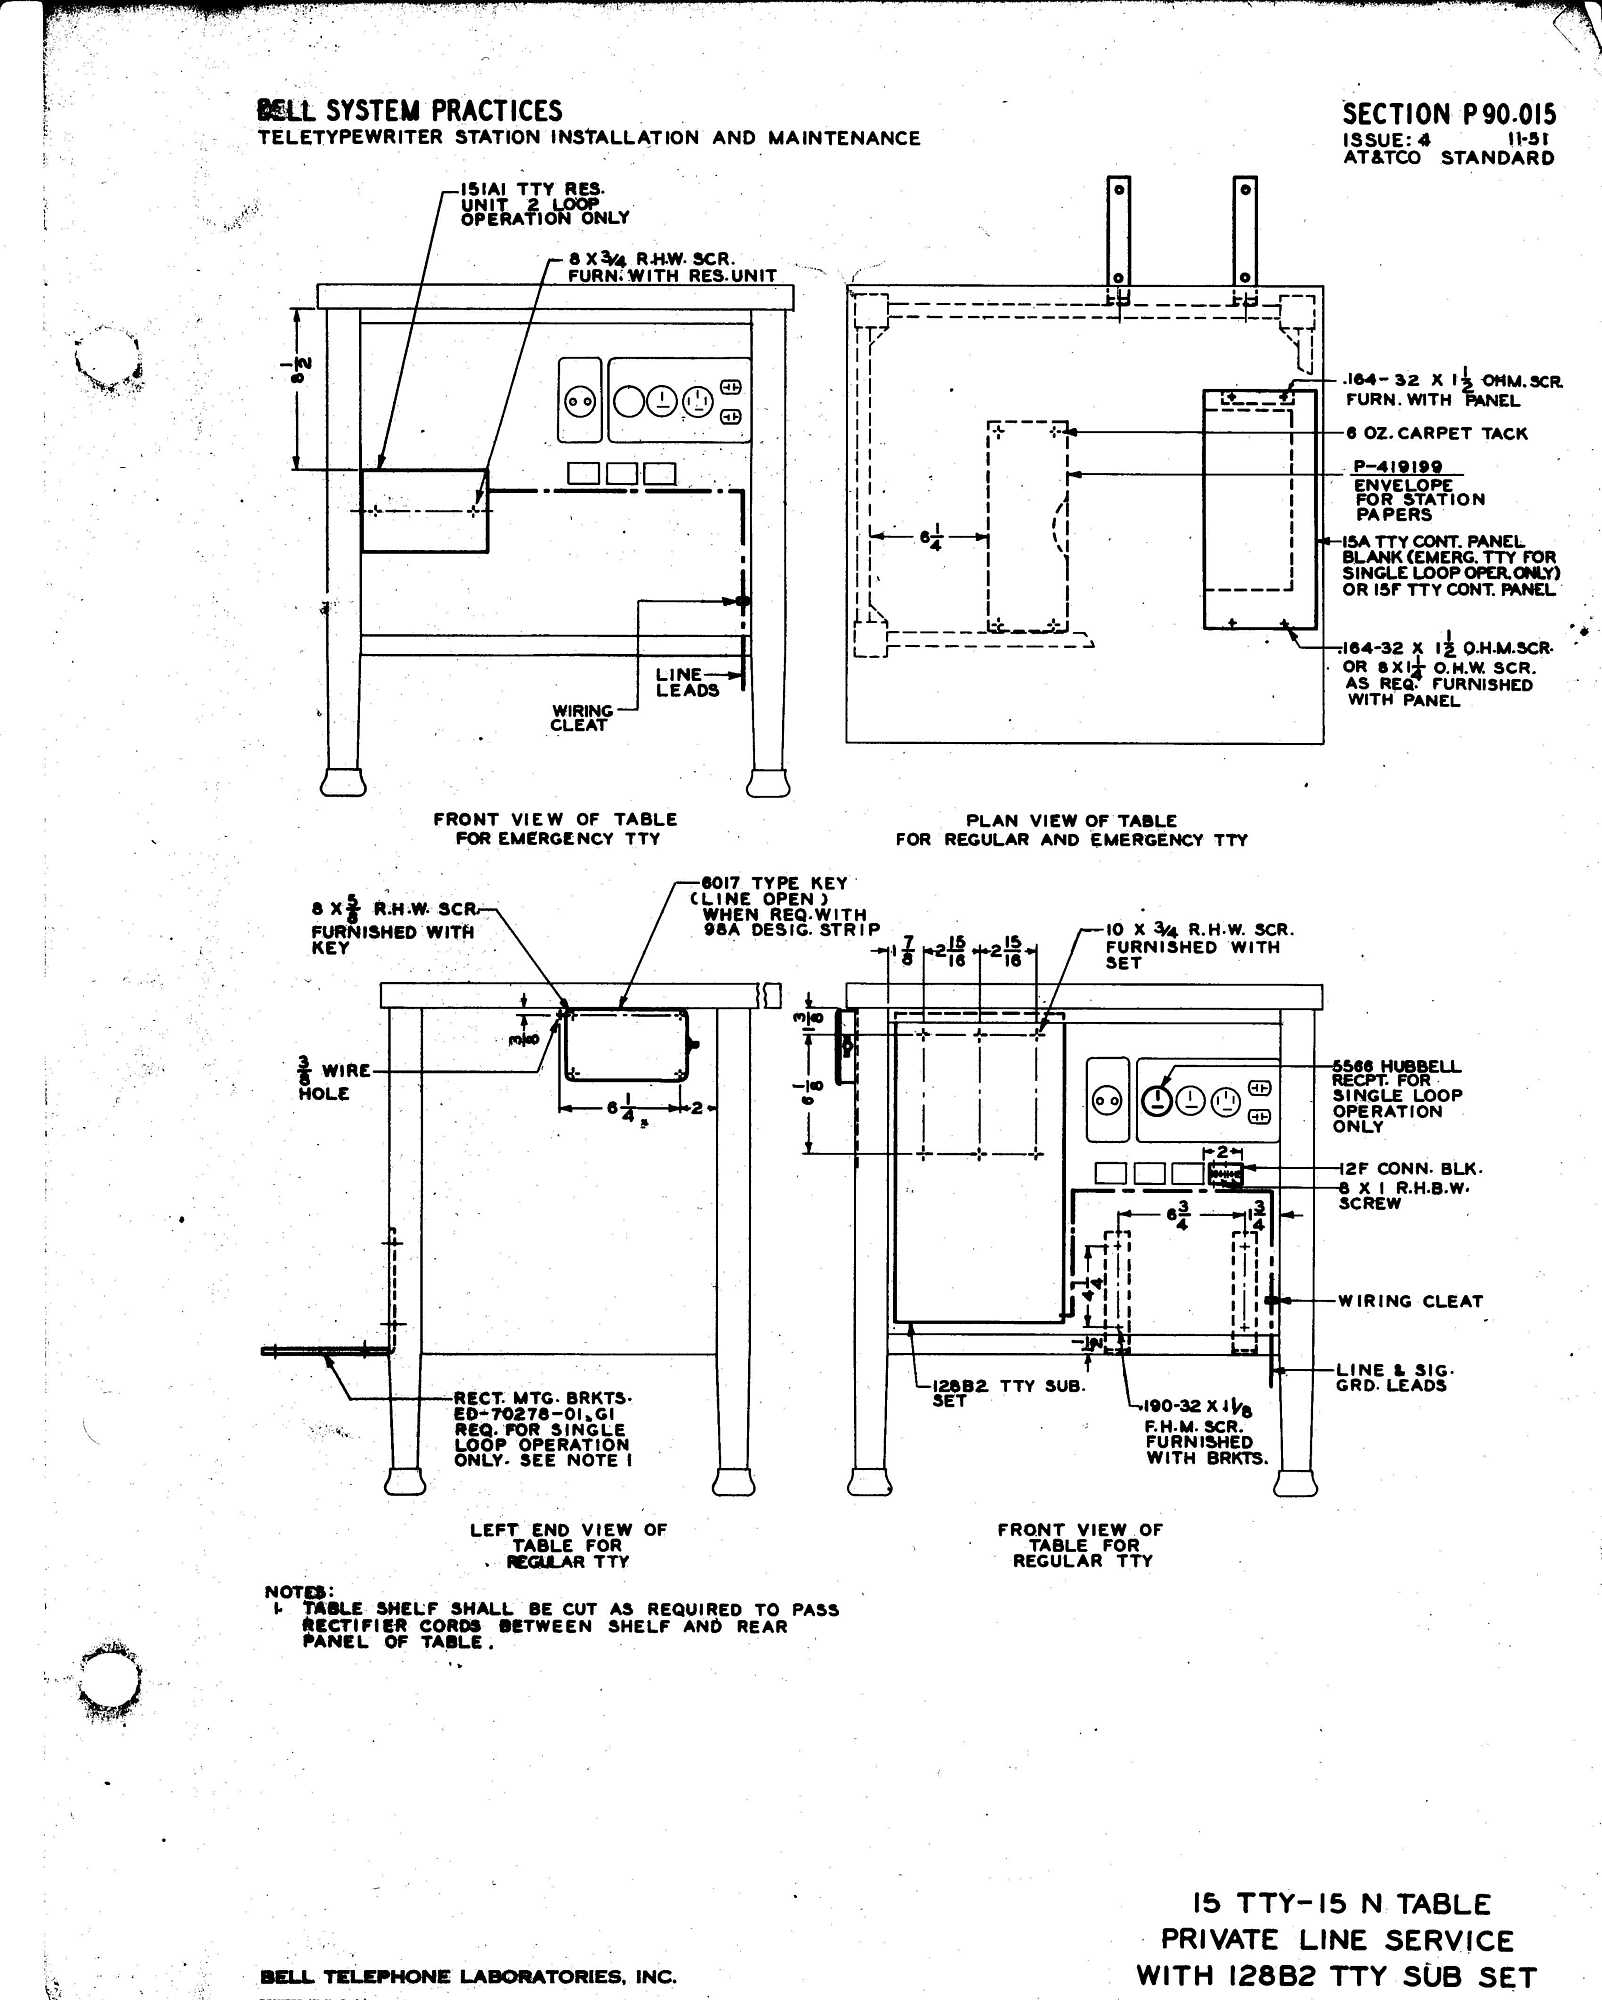 Teletype Mod 28 Maintenance Manual Re Q Wiring Diagram Section P90015 15 Tty N Table Private Line Service With 128b2 Sub Set